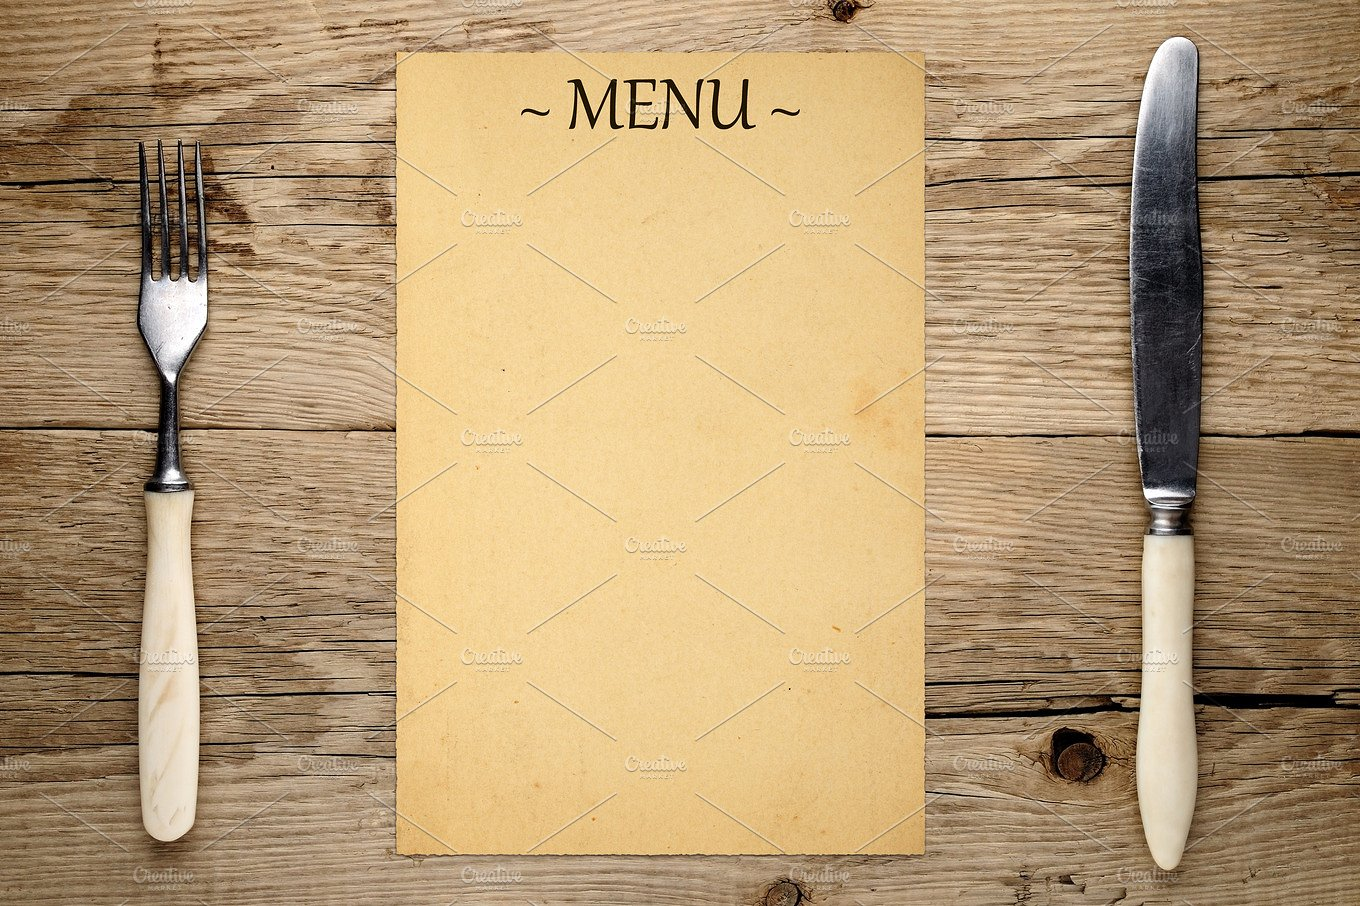 free menu design templates - 16 blank menu designs psd vector format download